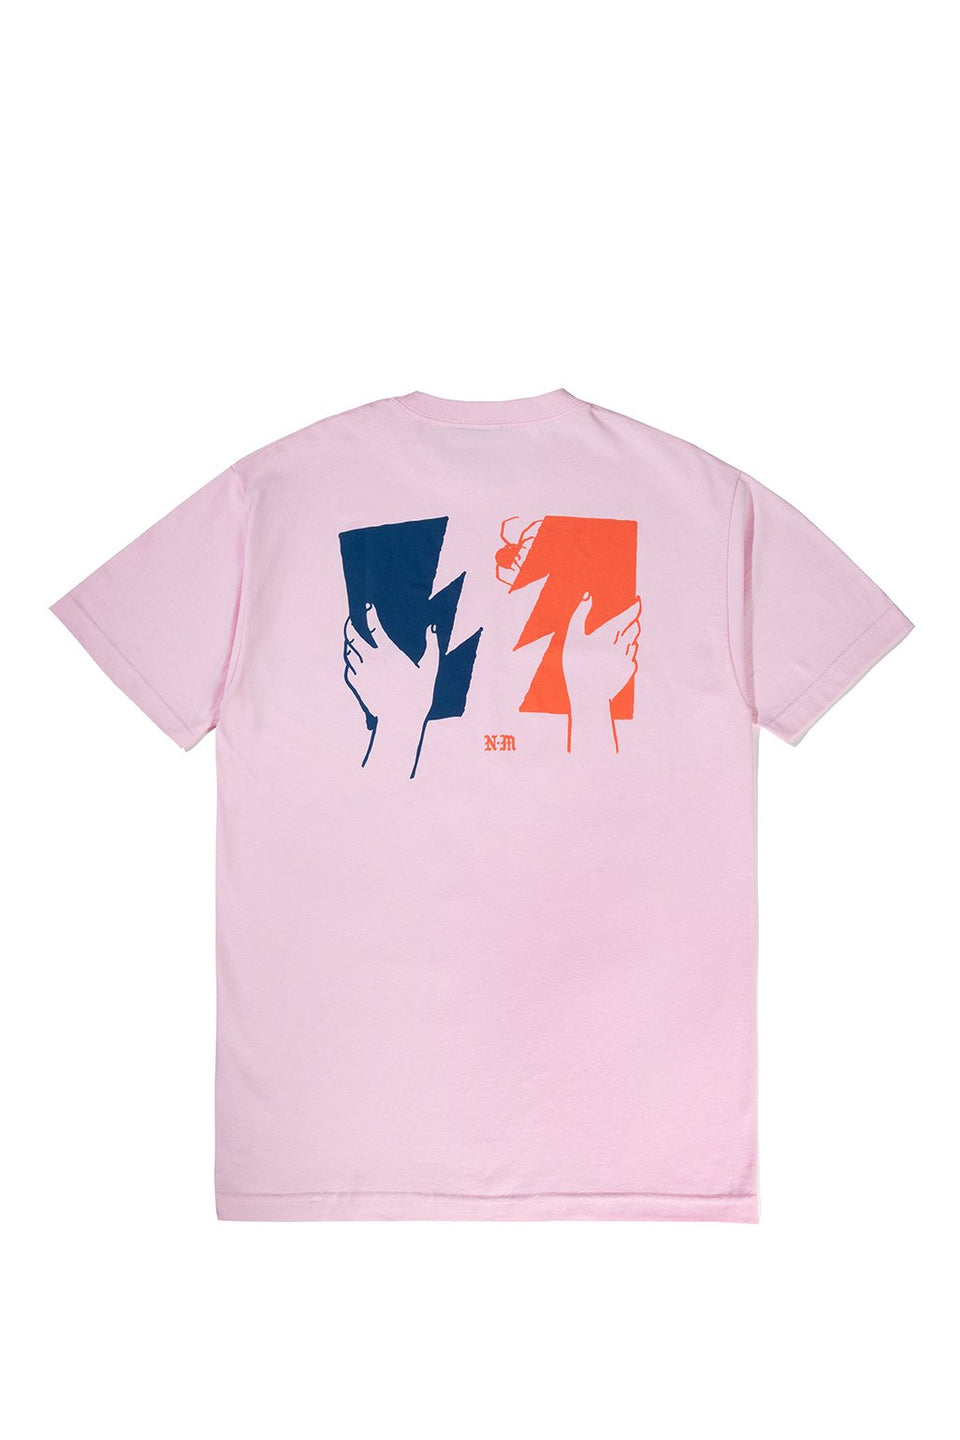 Never Made Flag T Shirt by The Hundreds